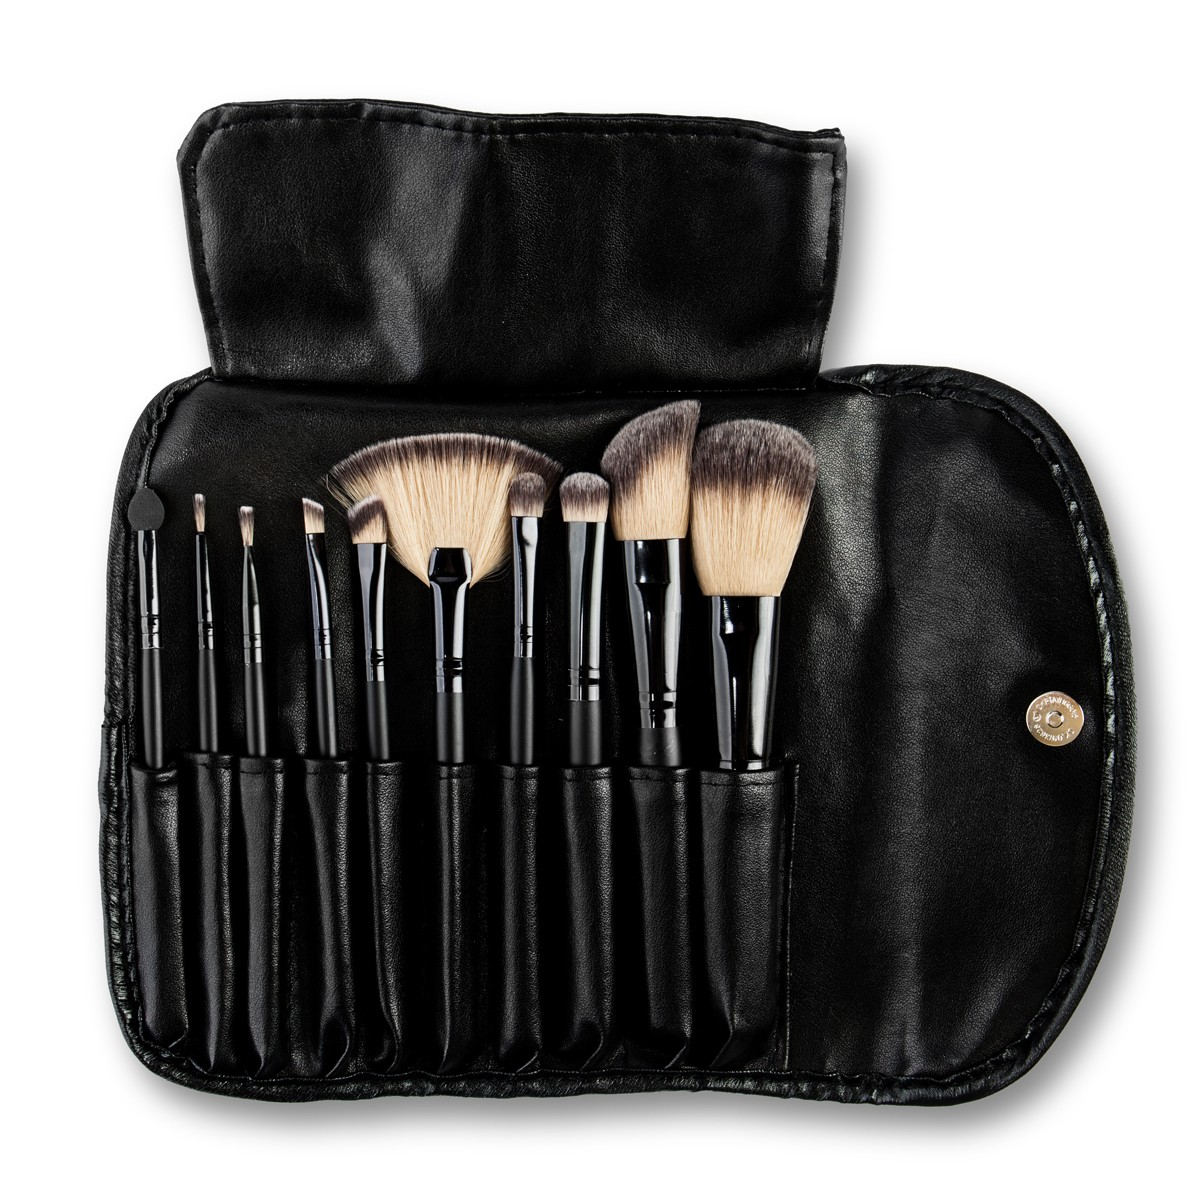 10-Teiliges Pinsel-Set - Professional